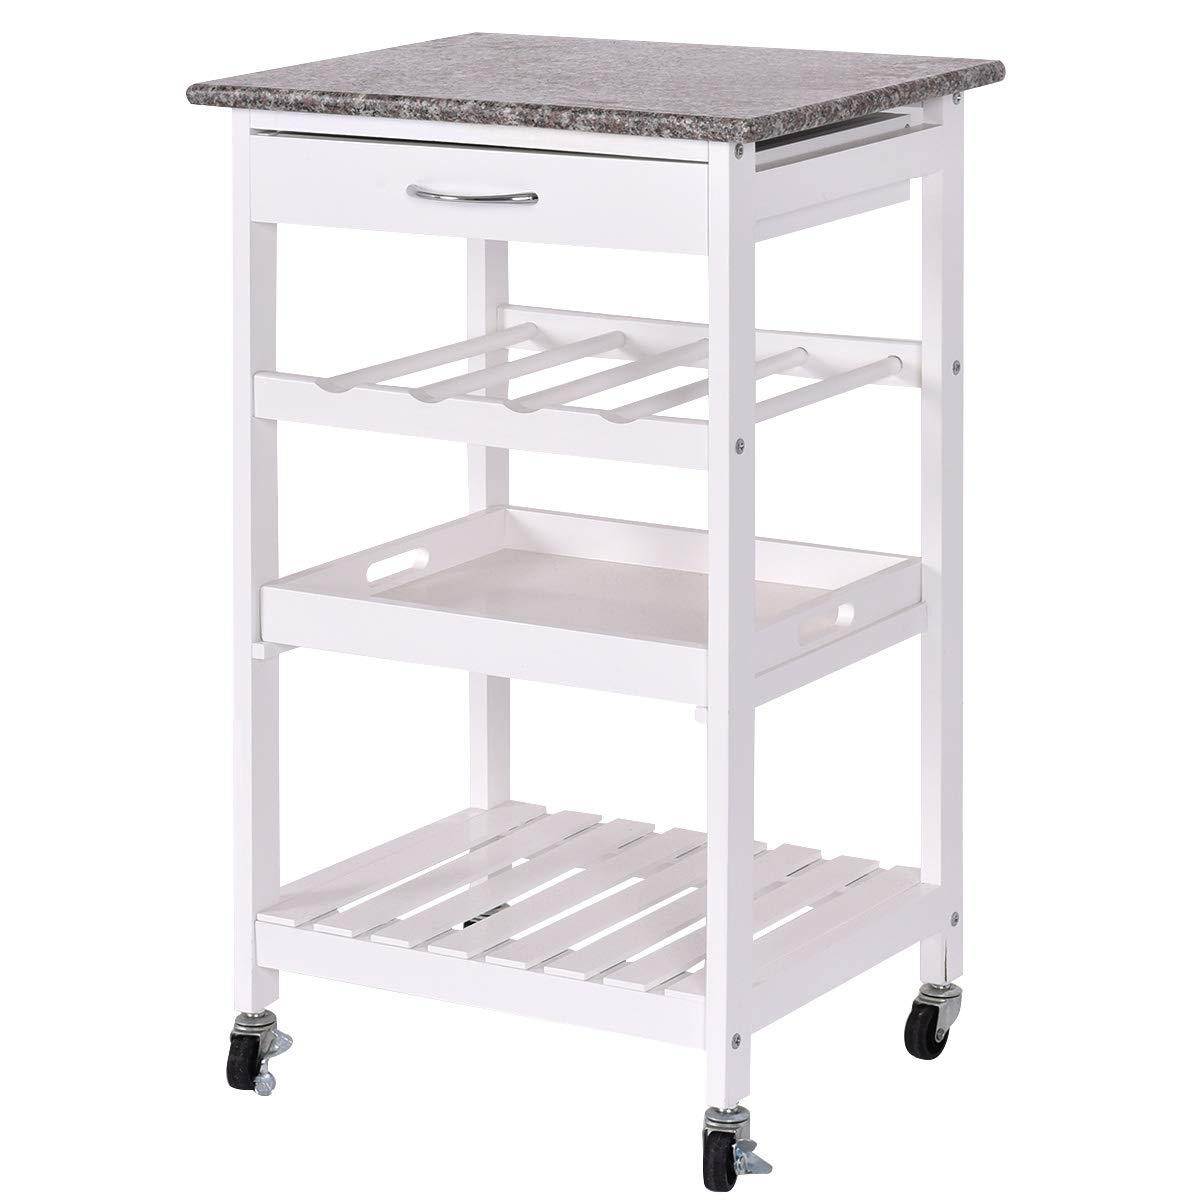 Giantex 4-Tier Kitchen Cart Rolling Wood Kitchen Trolley Island Cart with Lockable Wheels, Drawer, Storage Shelf, Wine Rack and Granite Countertop (White)